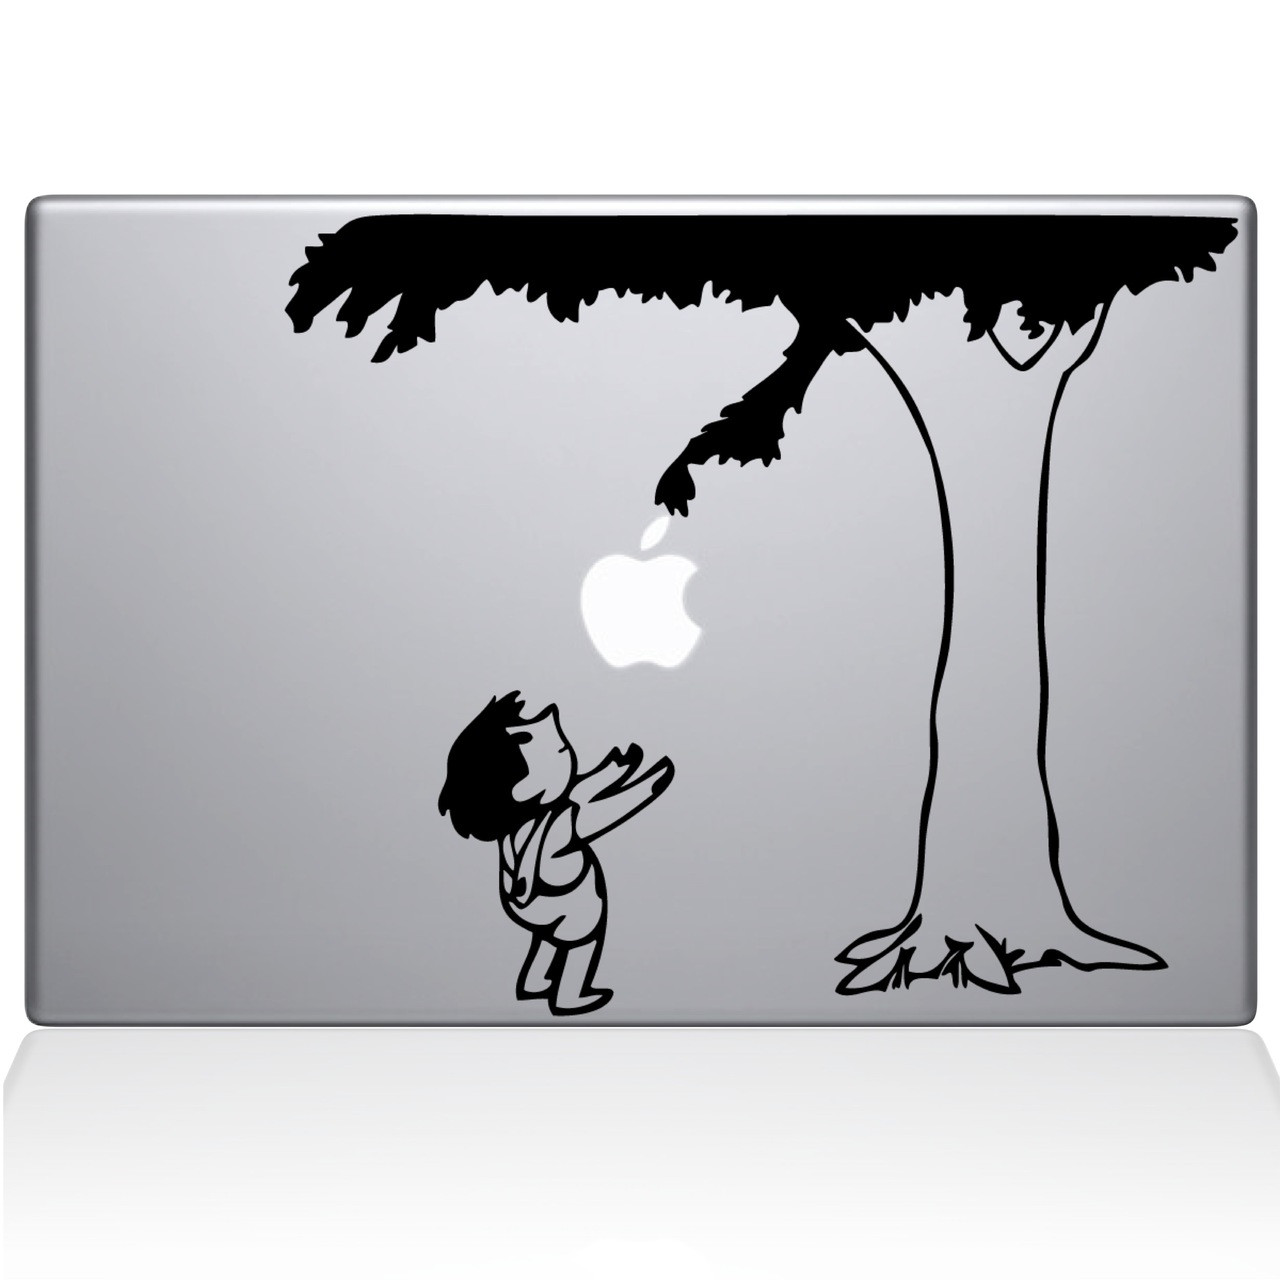 Fairy Princess Wall Stickers Giving Tree Macbook Decals The Decal Guru